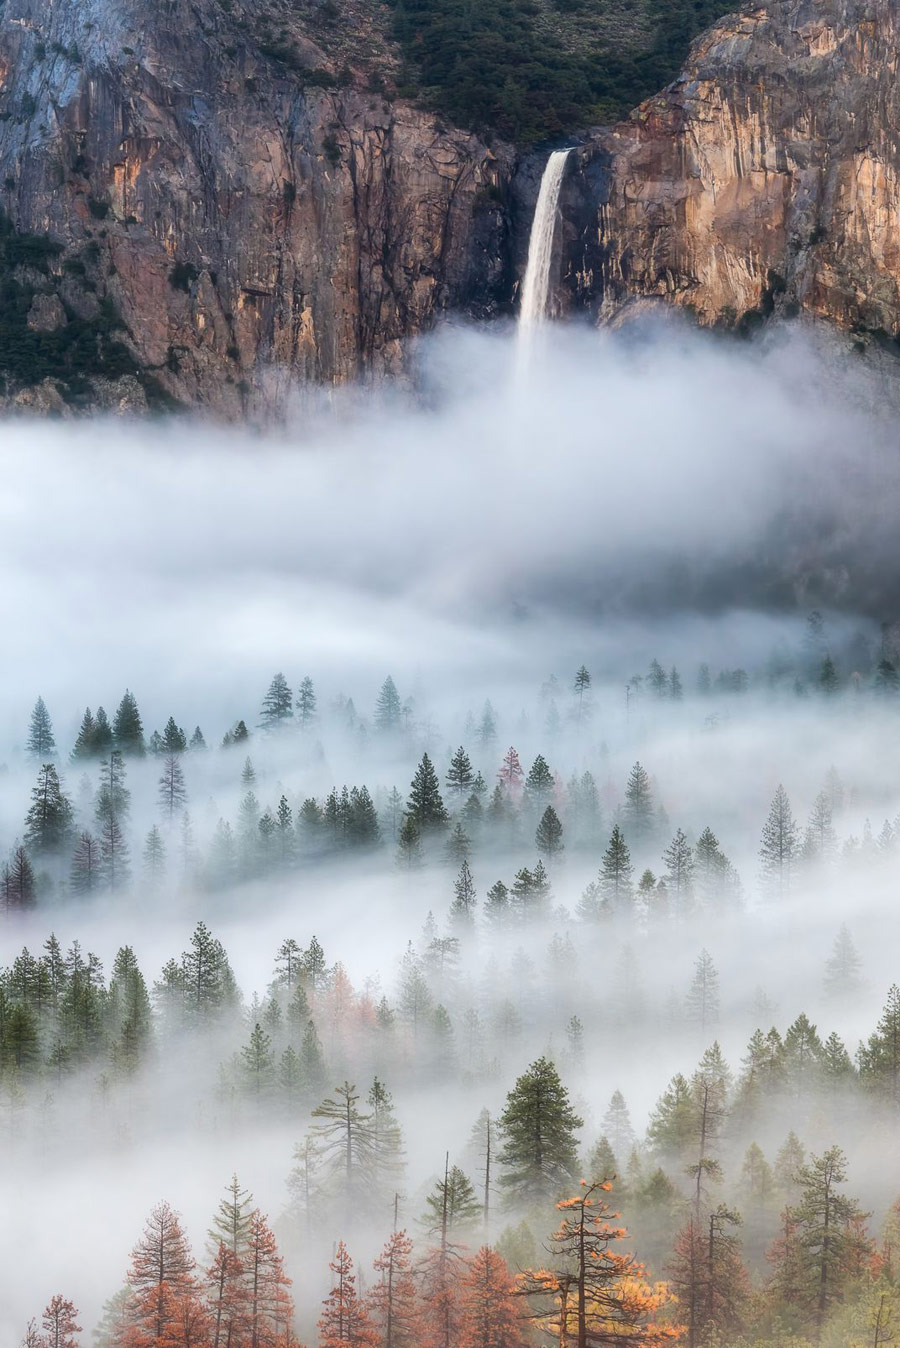 Into the Mist, © Brandon Y, Natural Environment Category, CEPIC Stock Photography Awards